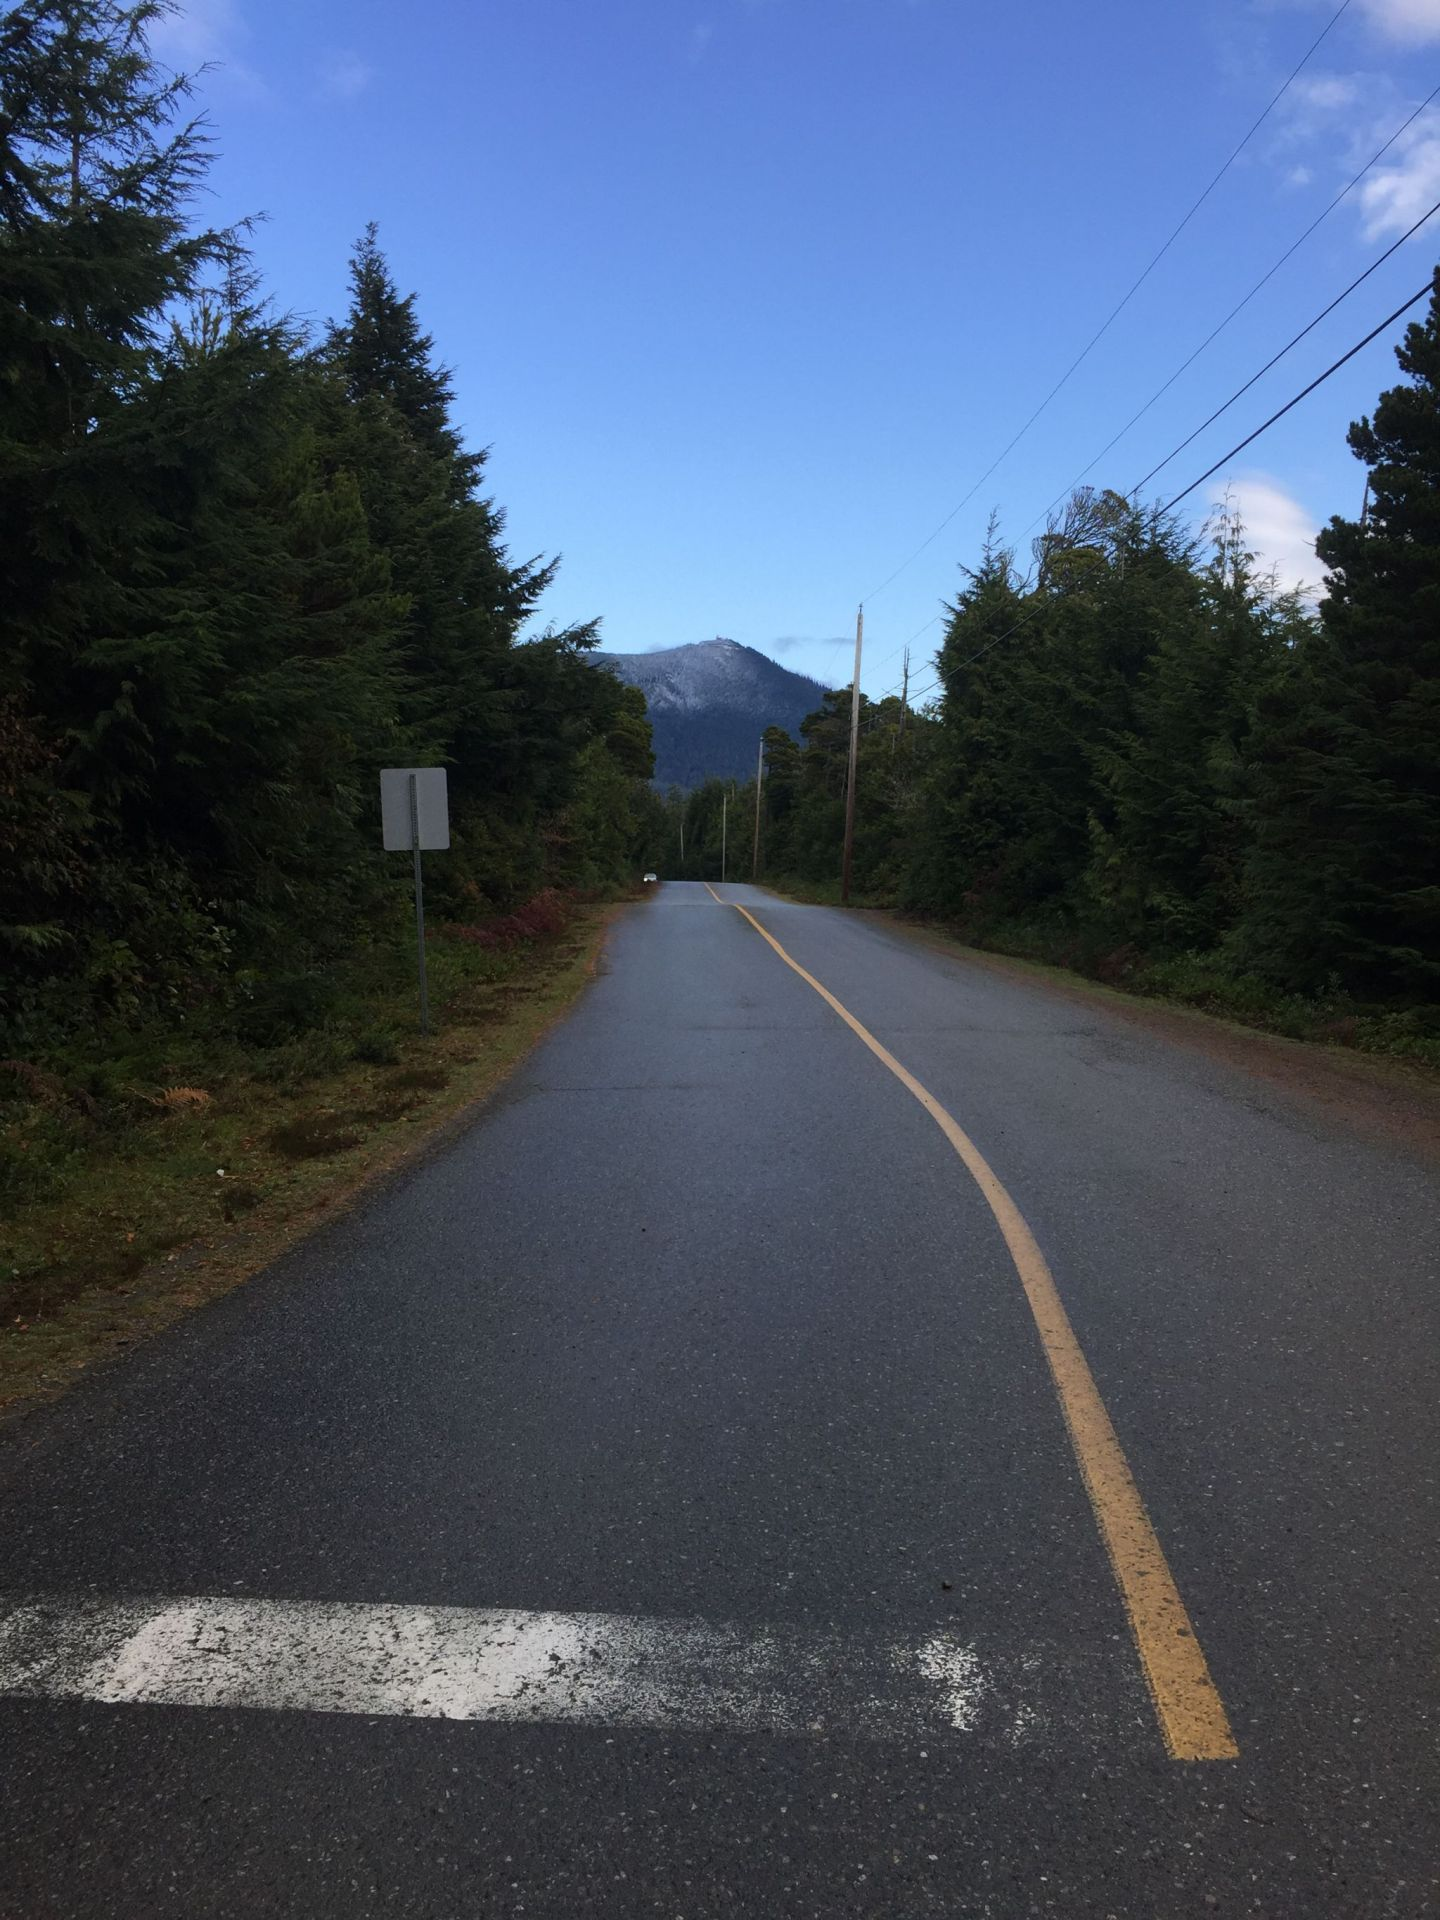 A road to the mountains near Ucluelet